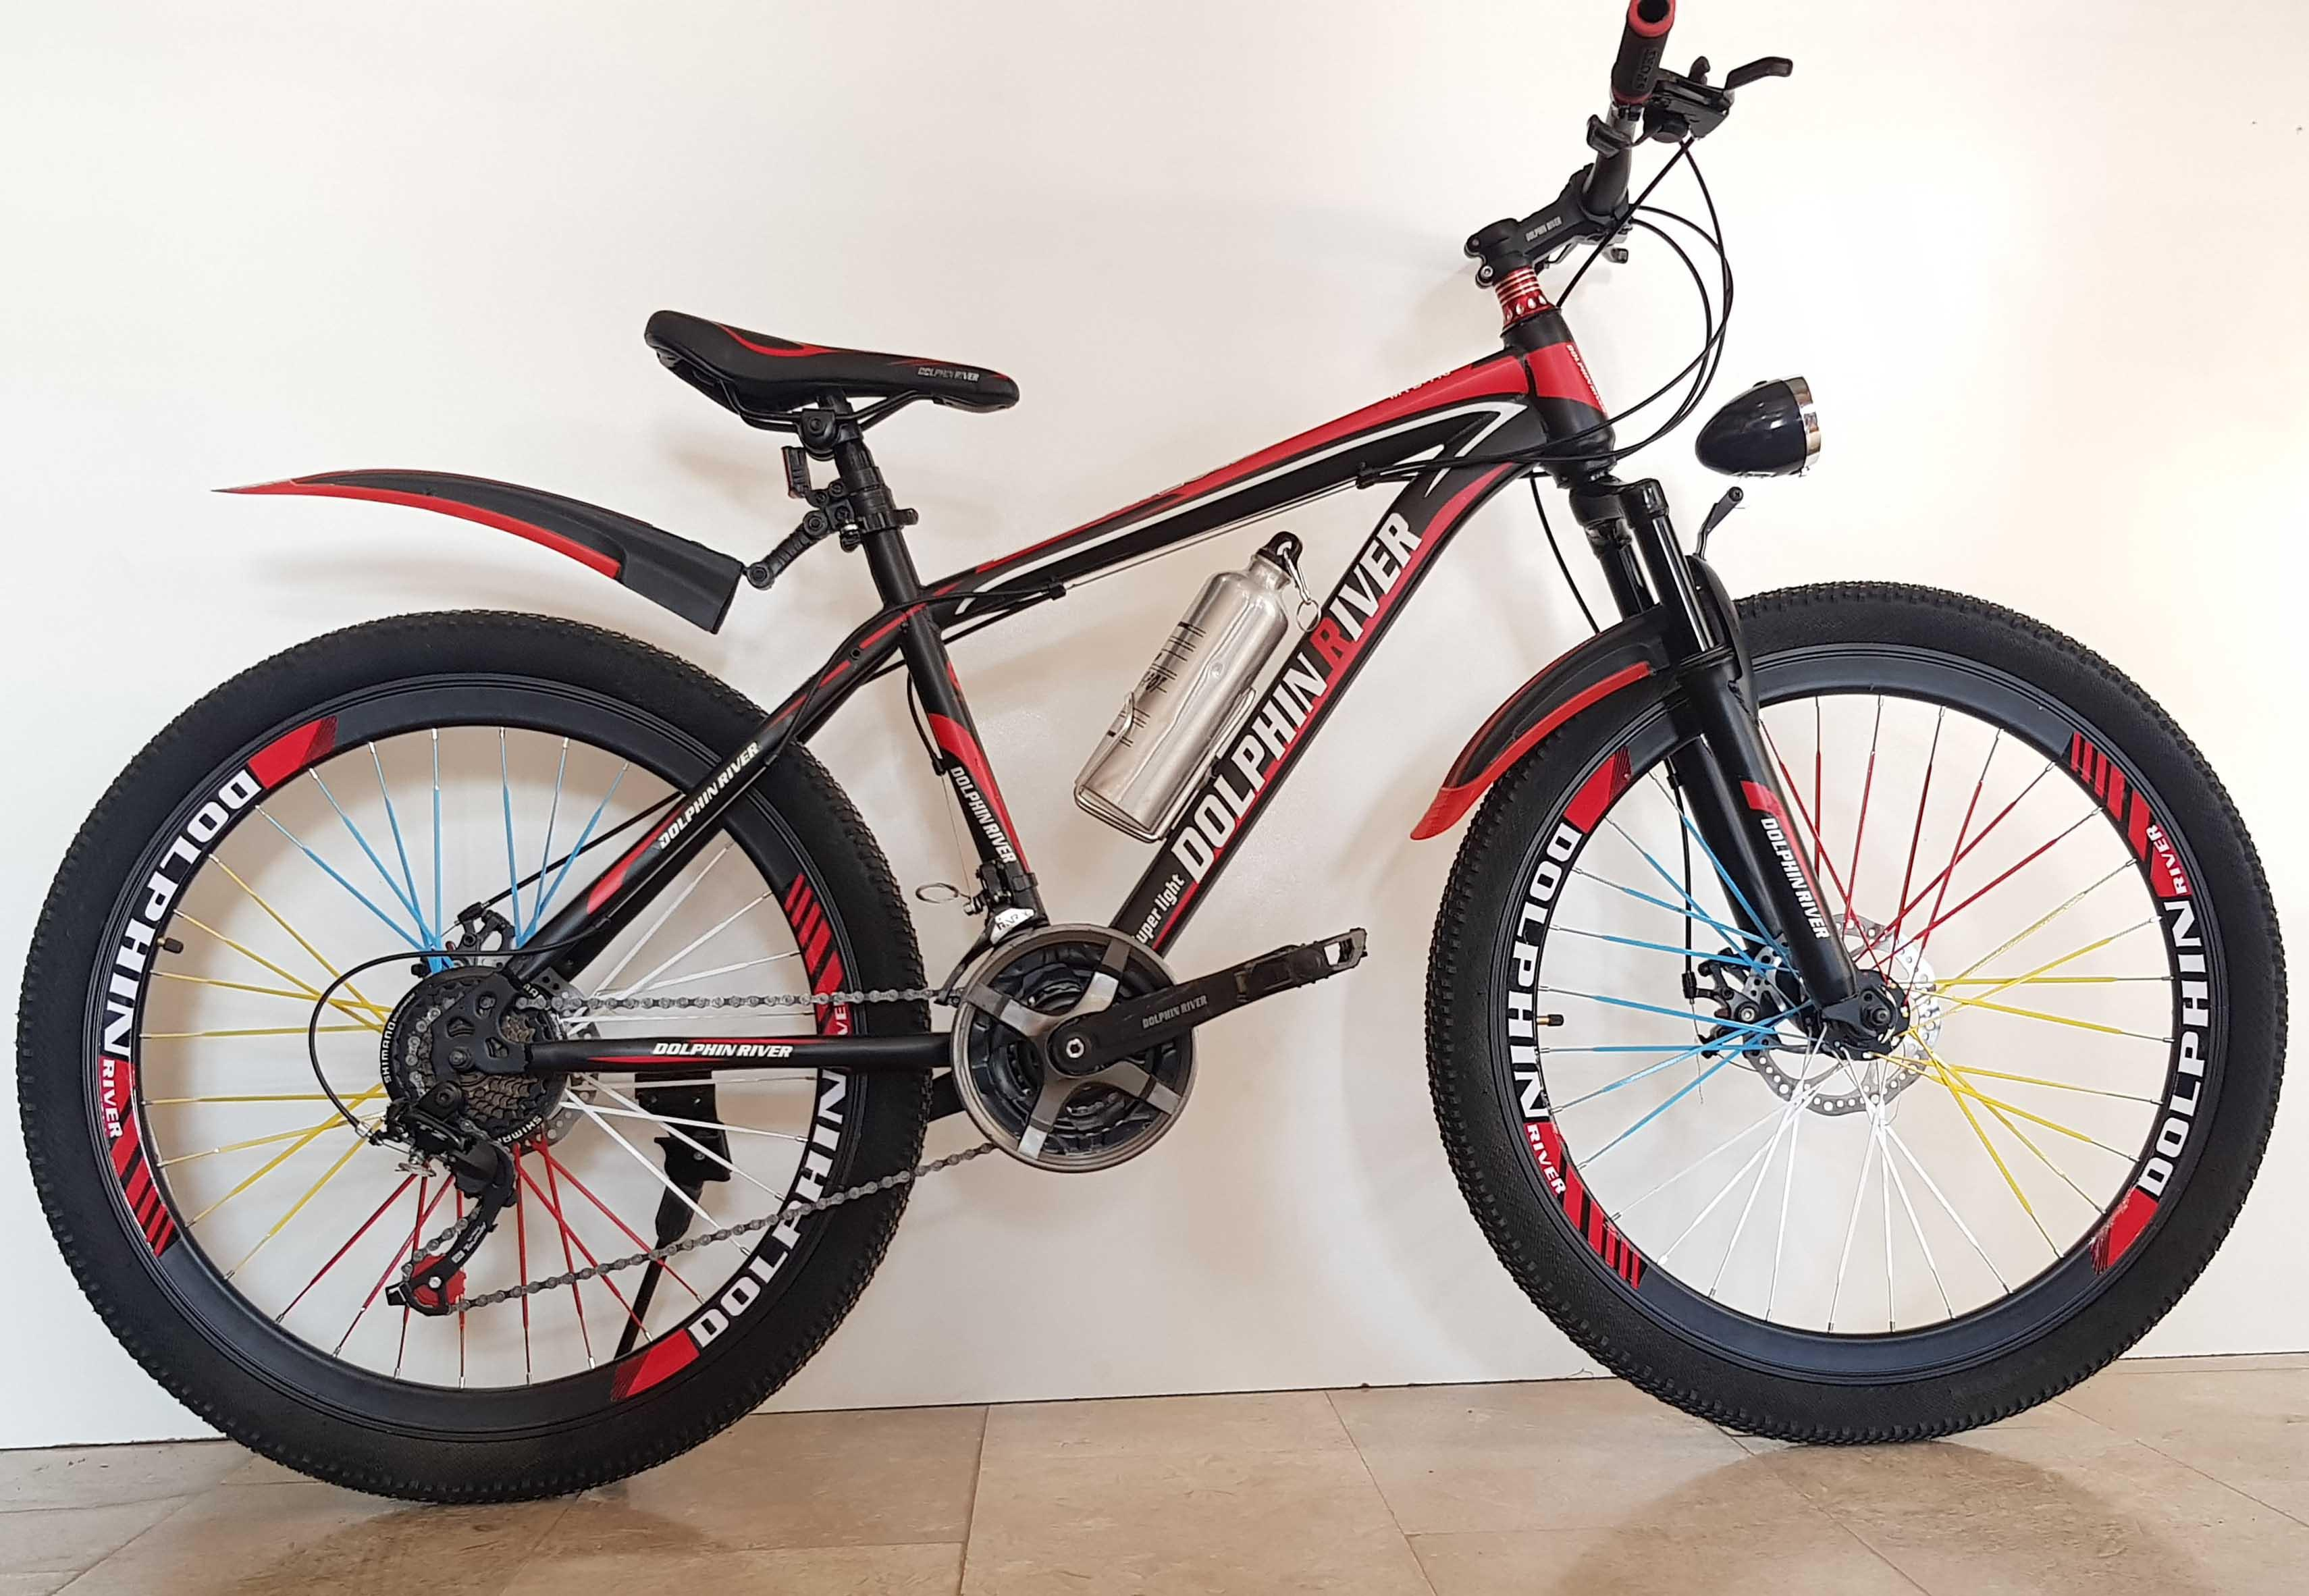 Dolphin River Bicycle-26 Inches-Black & Red